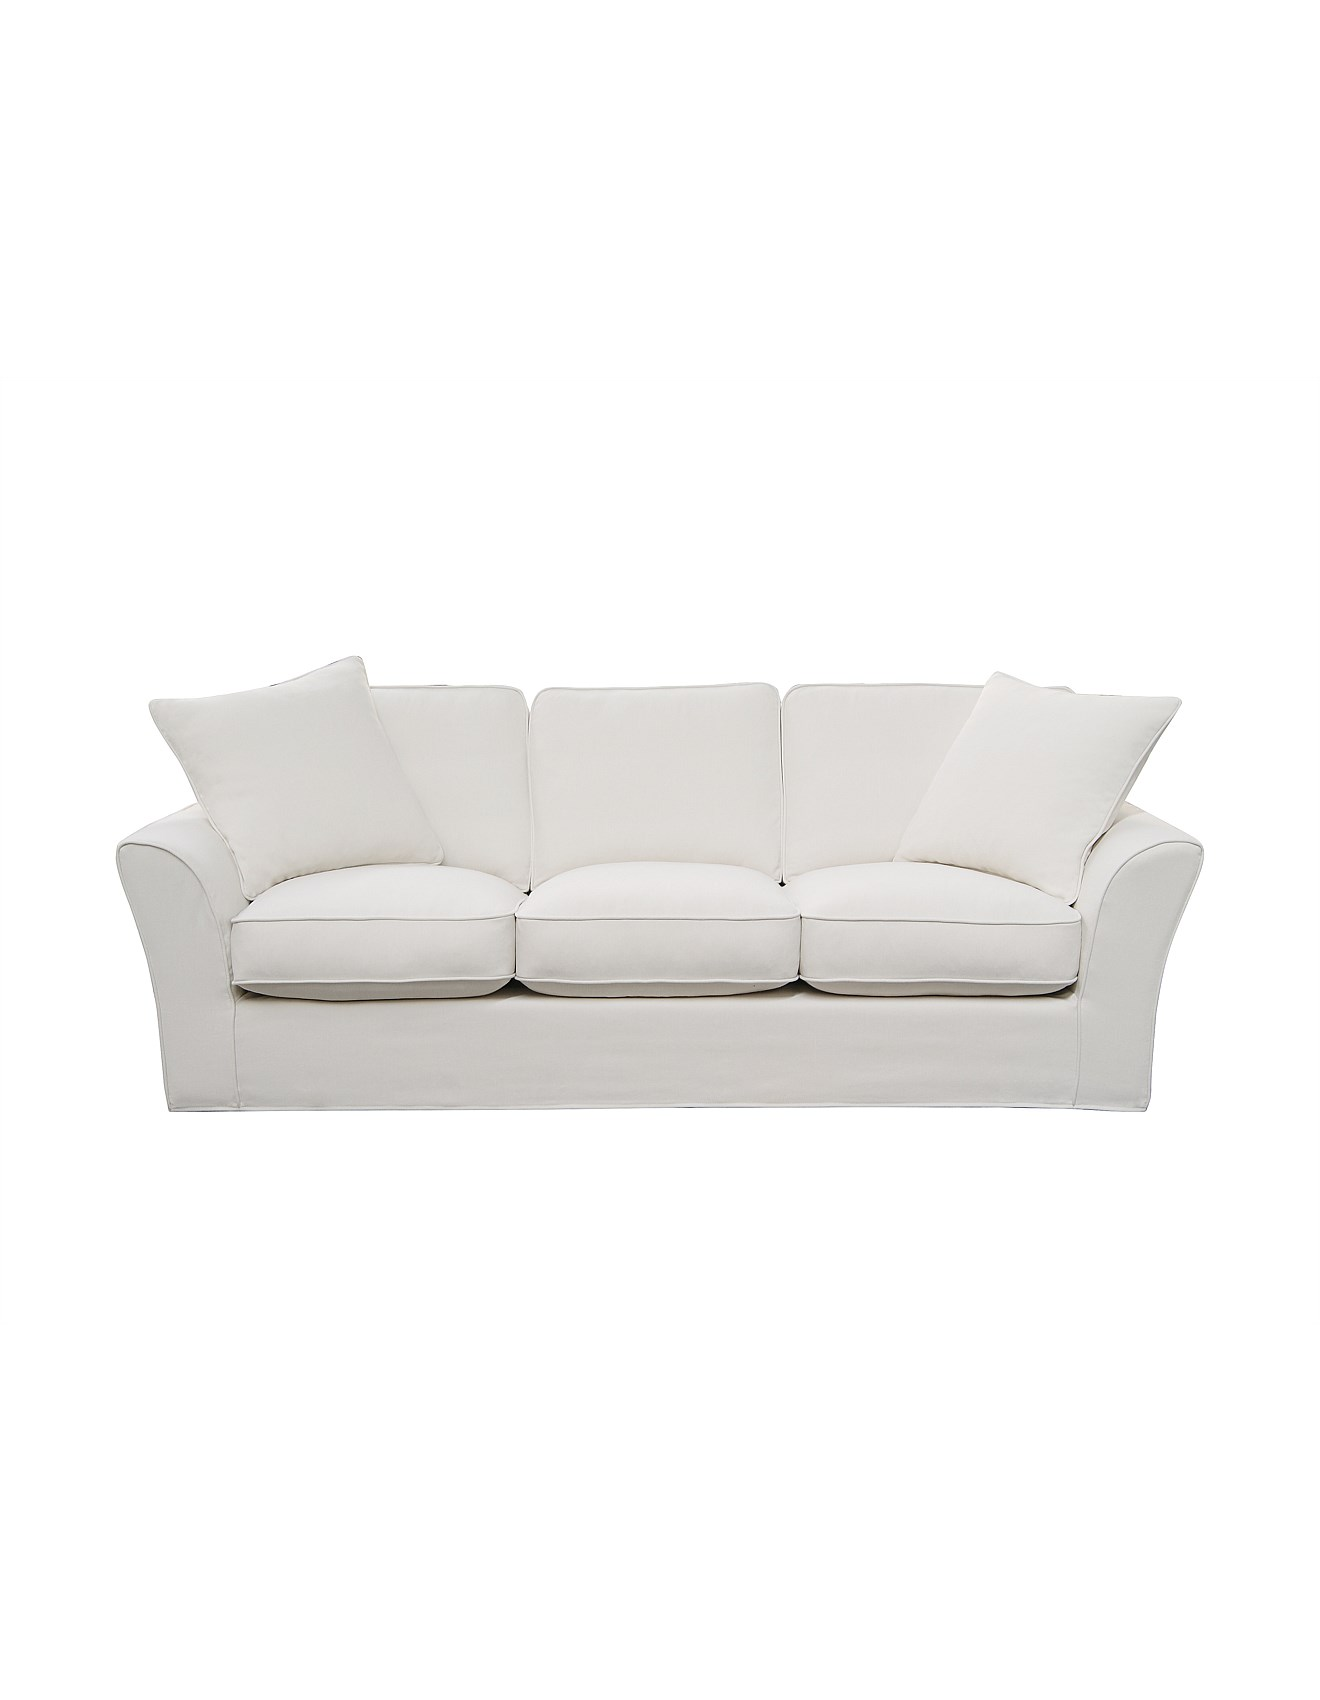 Peachy Maison 3 Seater Sofa Linara White Beige Fabric Caraccident5 Cool Chair Designs And Ideas Caraccident5Info